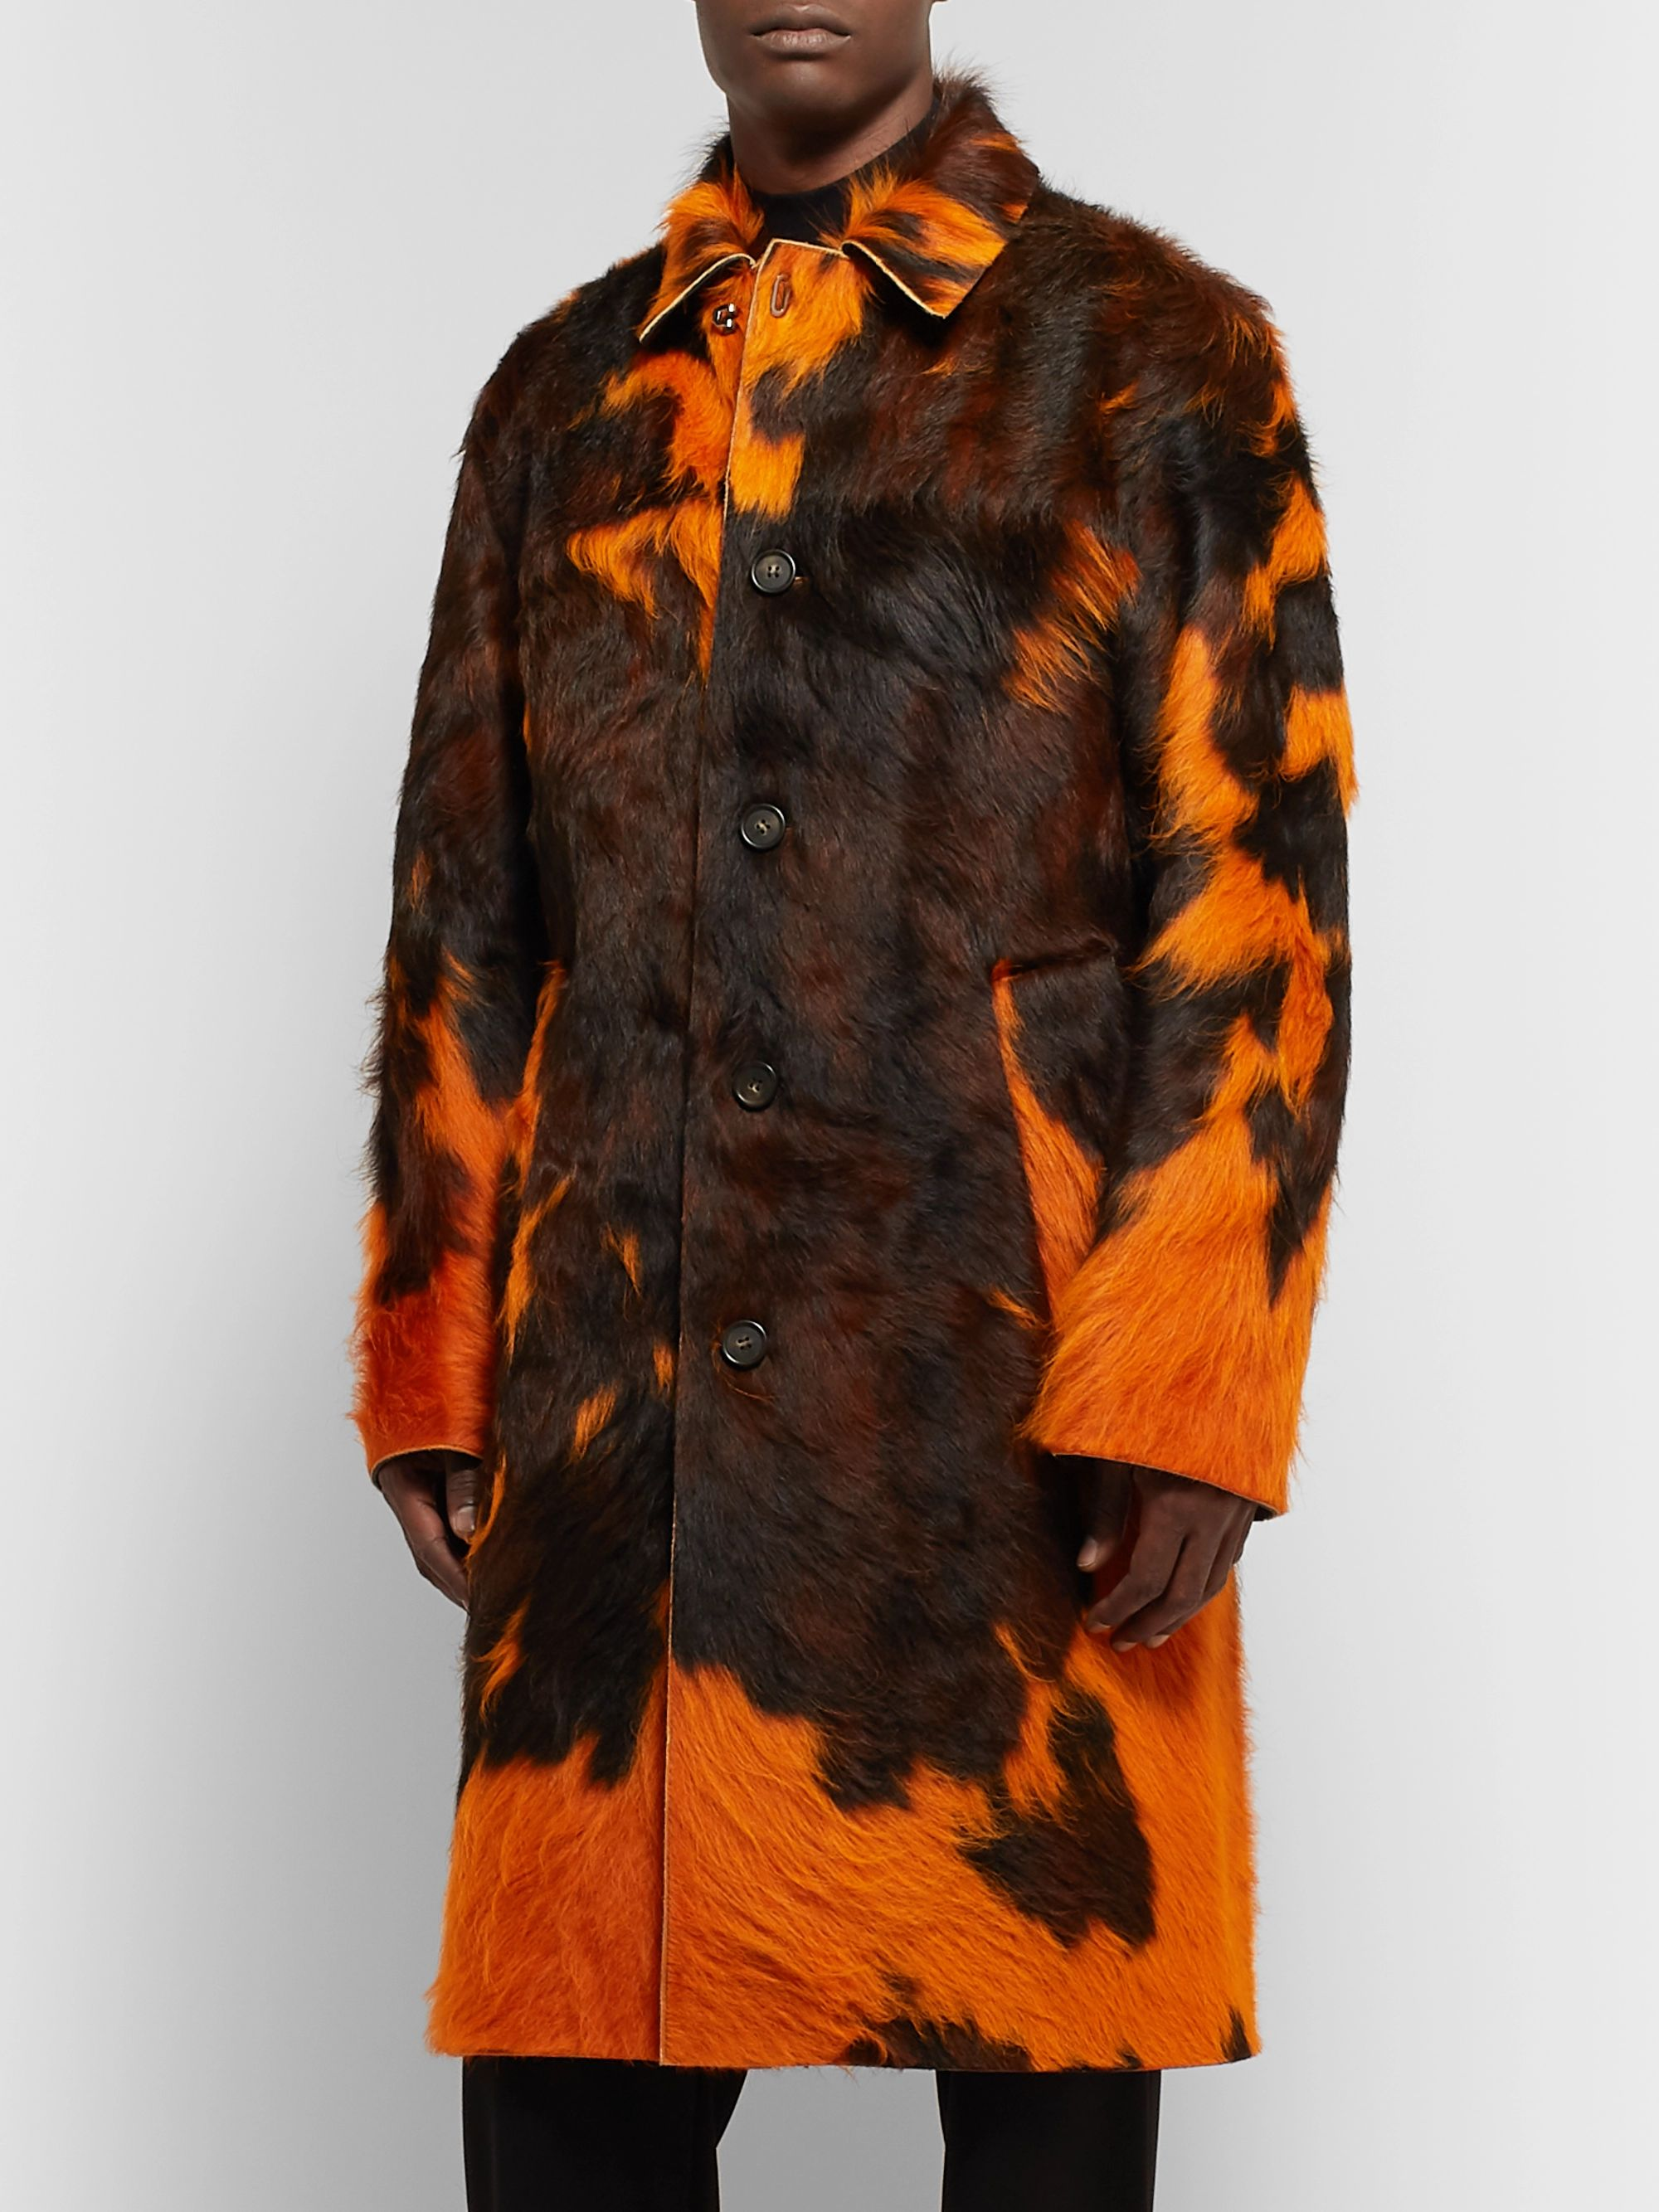 Acne Studios Laius Overdyed Calf Hair Coat